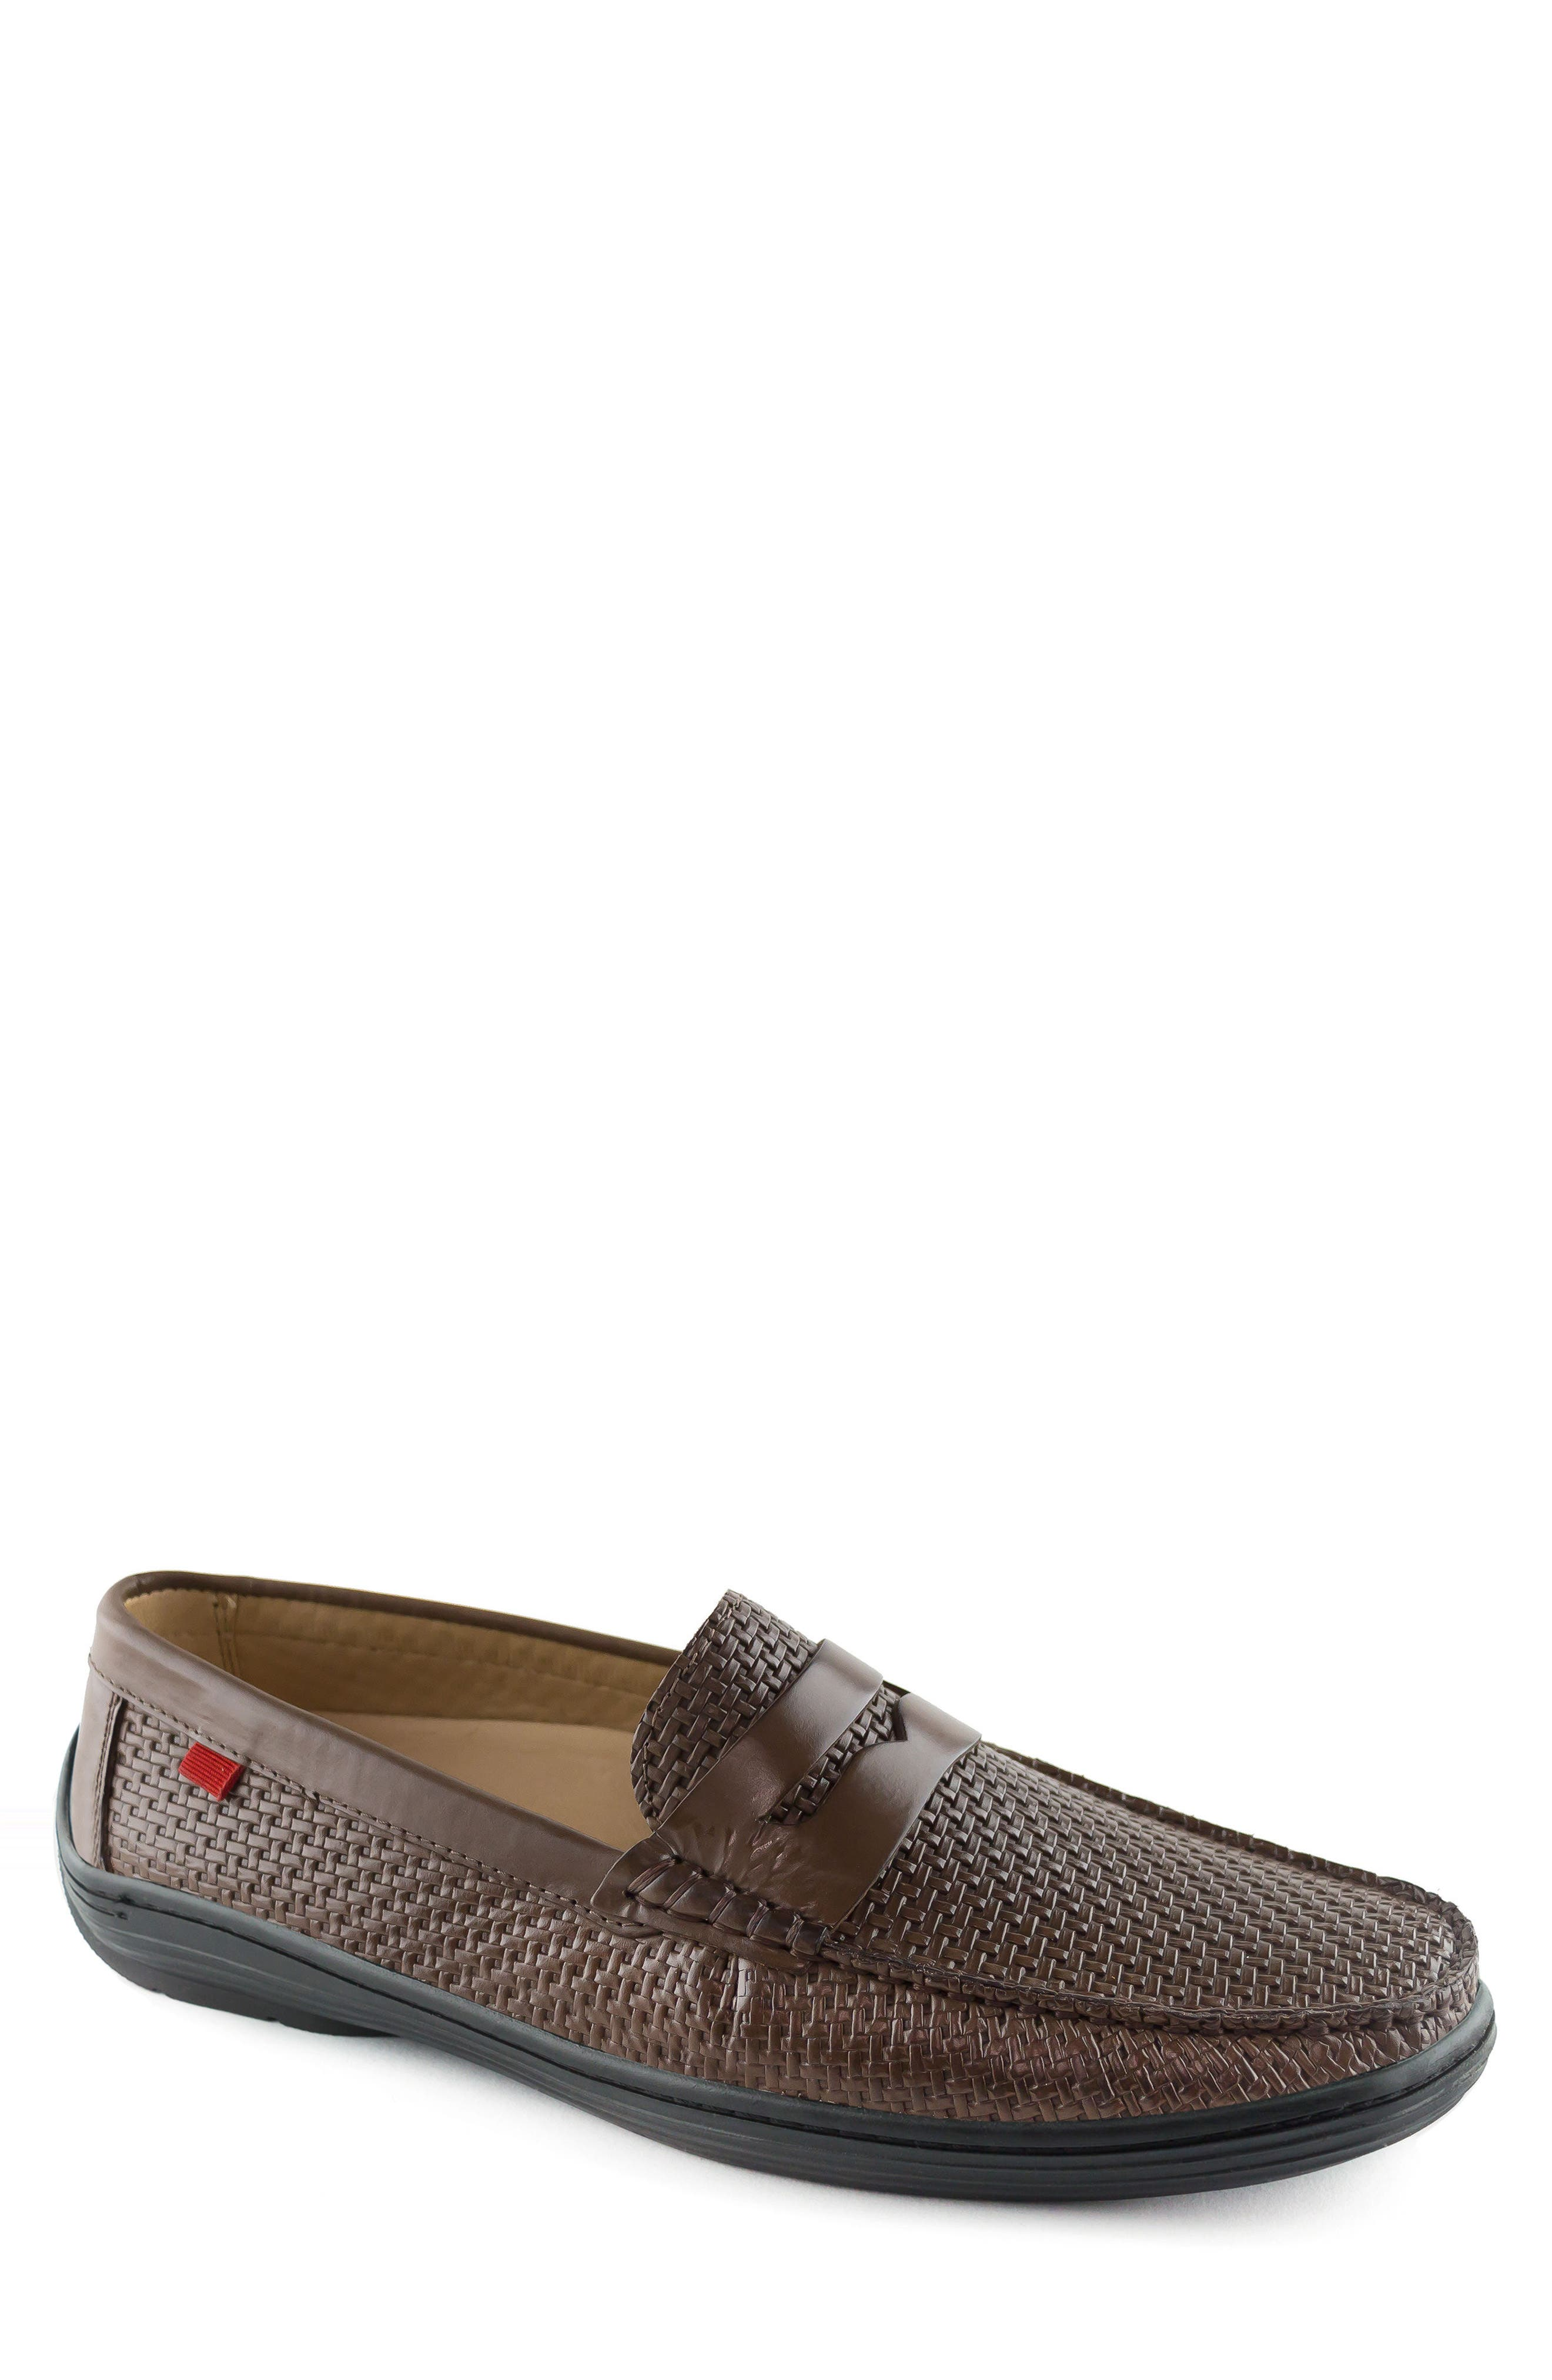 Atlantic Penny Loafer,                             Main thumbnail 5, color,